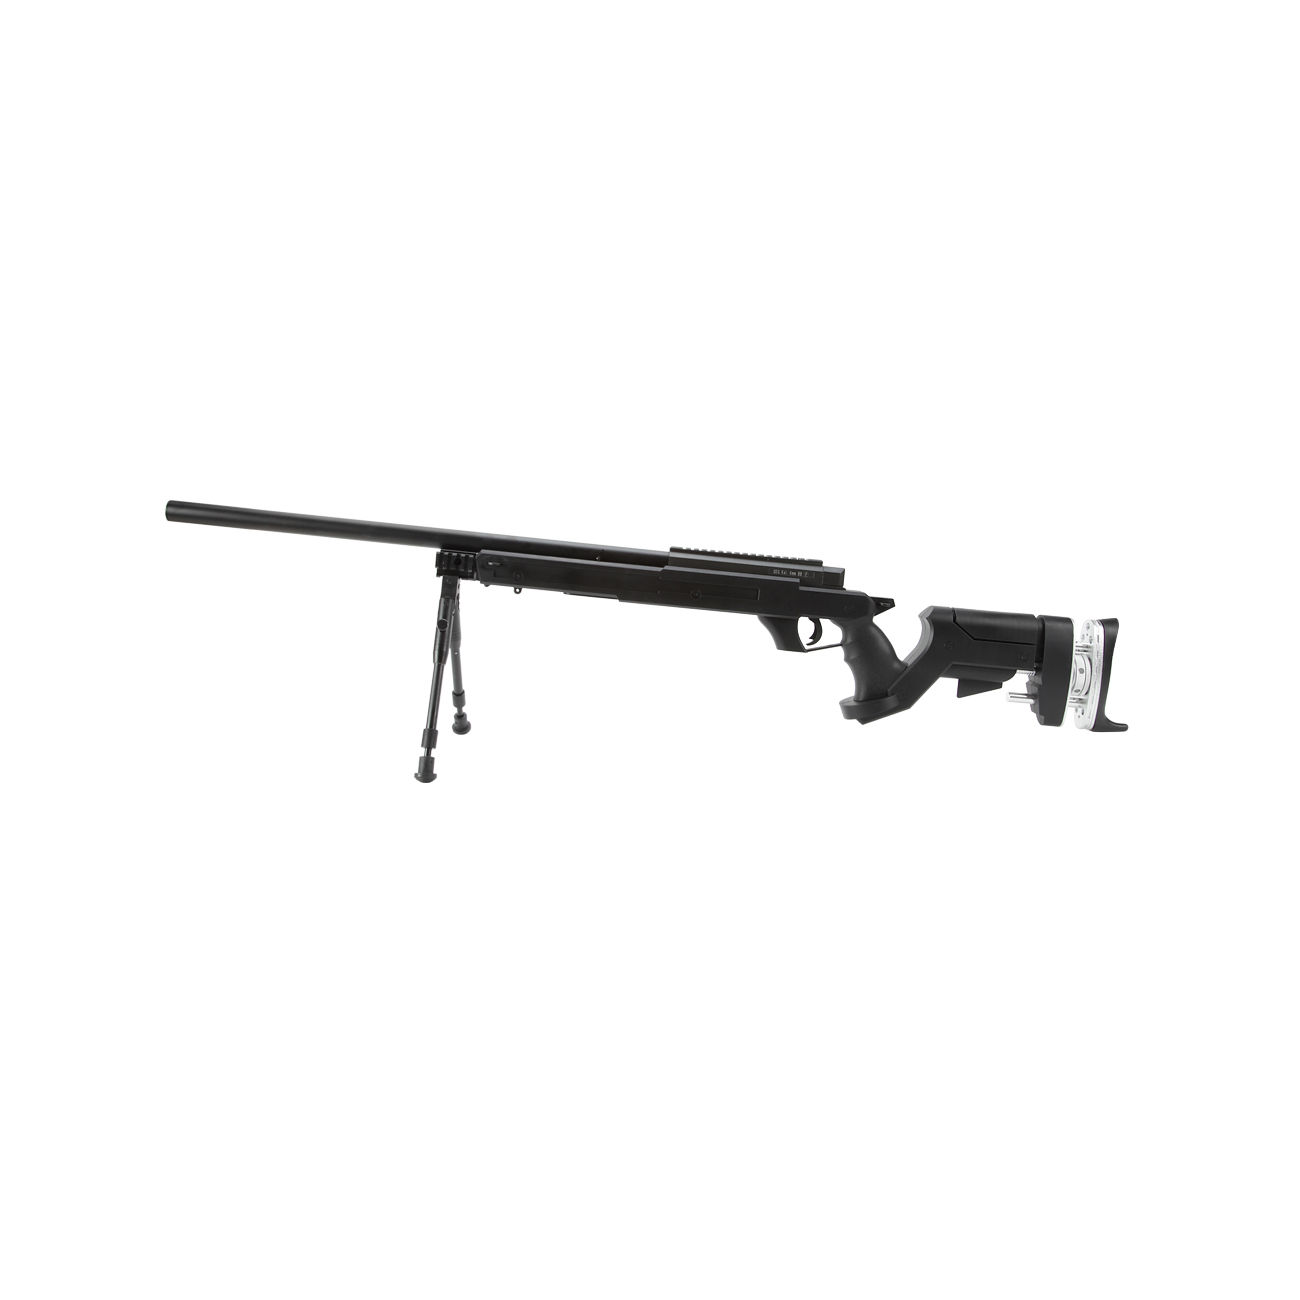 Well SR Pro Tactical Sniper Rifle Springer inkl. Zweibein 6mm BB schwarz 1